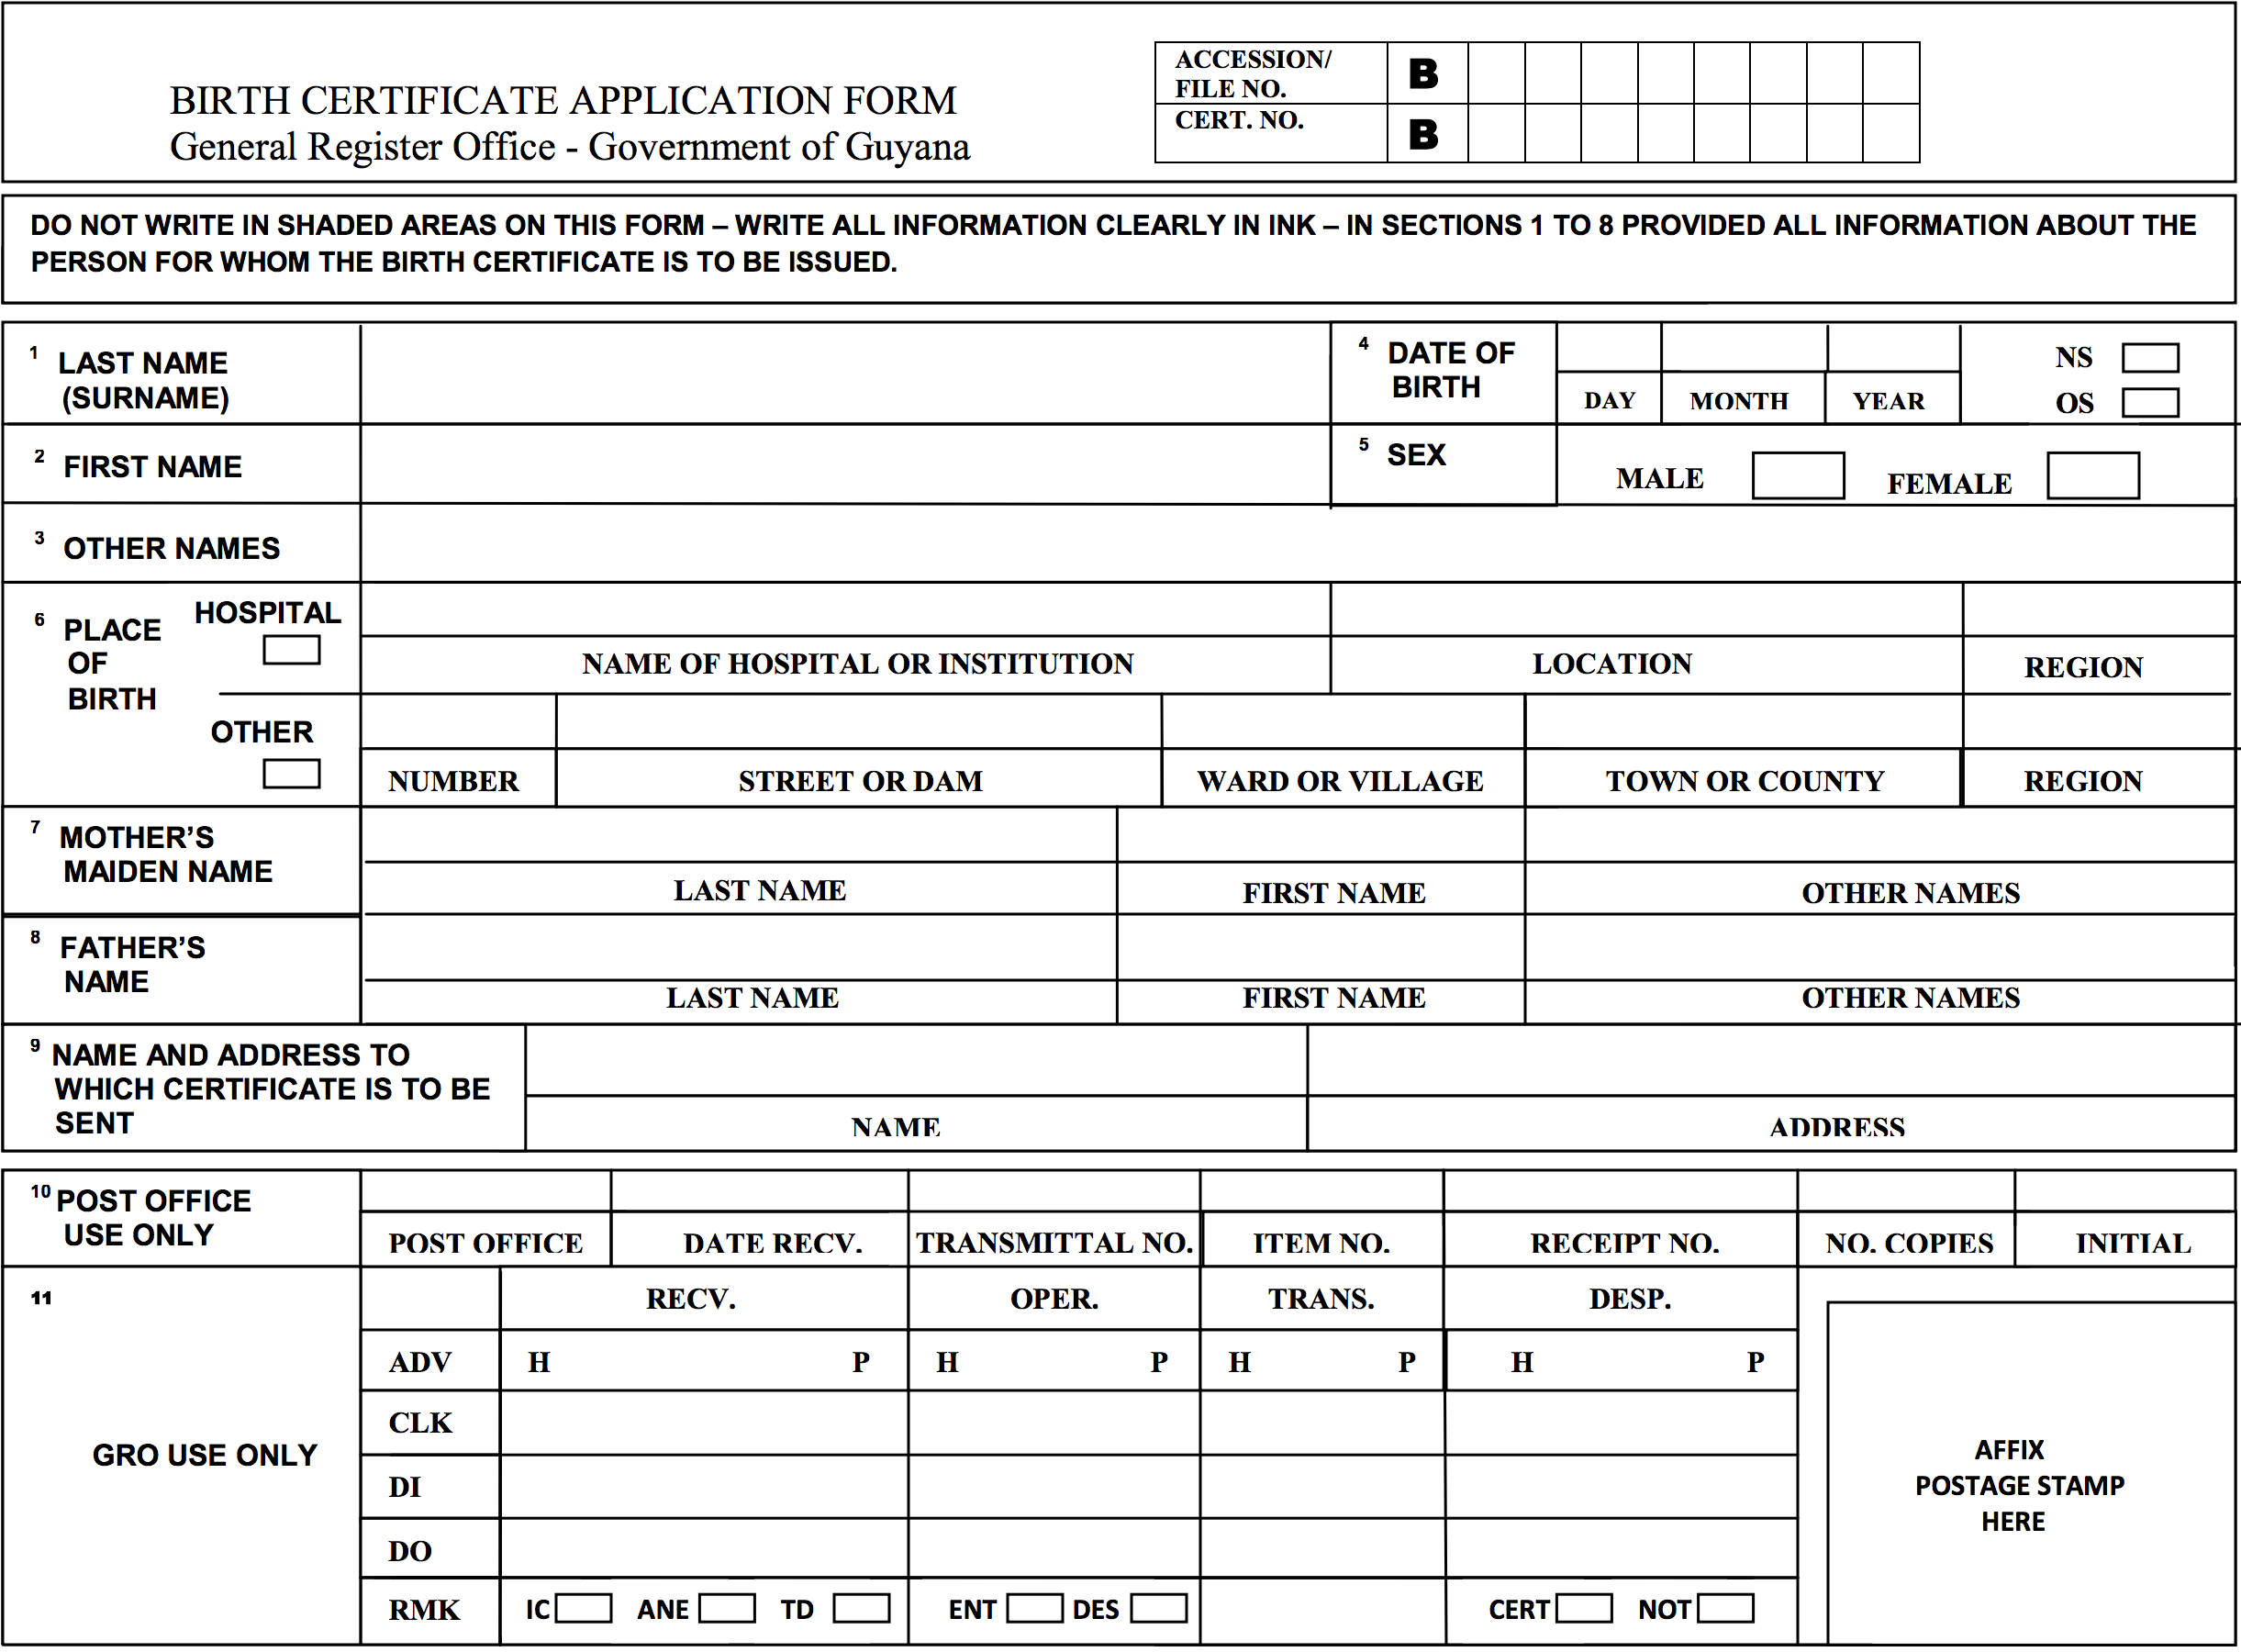 How To Apply For A Marriage License In Nevada 11 Steps: What Is Birth Certificate?